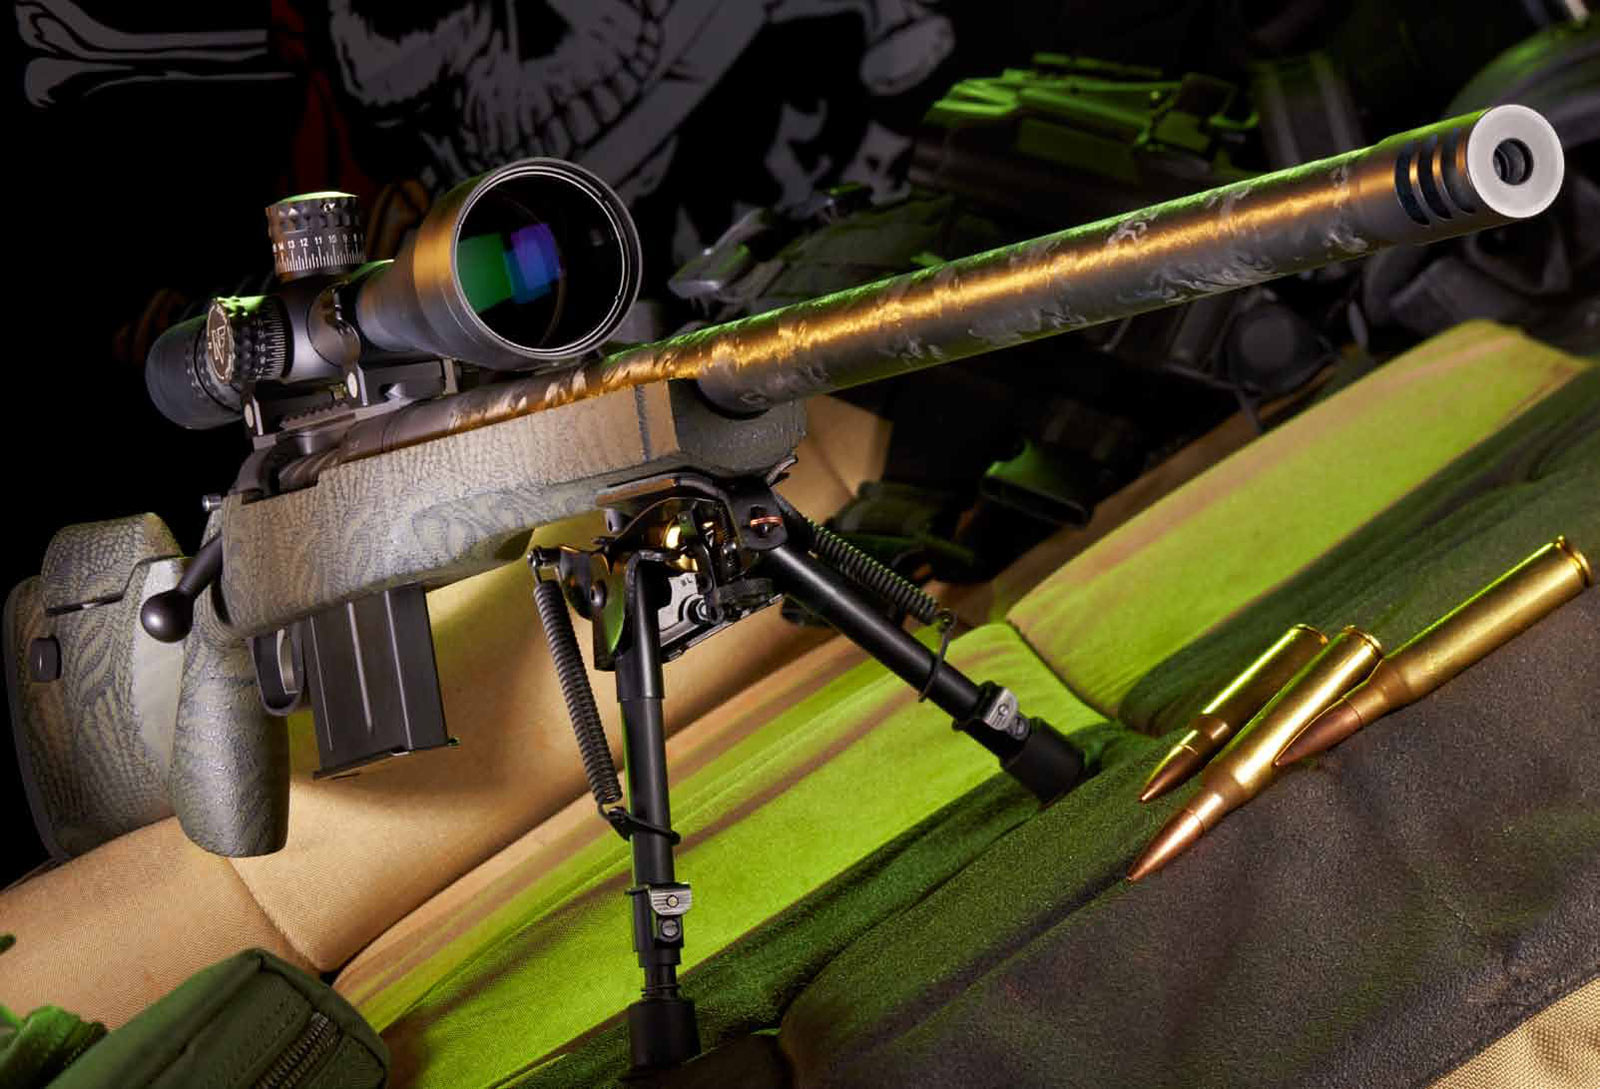 The Nightforce 5.5-22x50mm scope's long-range capability is a perfect match for the Proof Research TAC II. You'll be surprised by this .338 rifle's lightweight when you carry it afield.